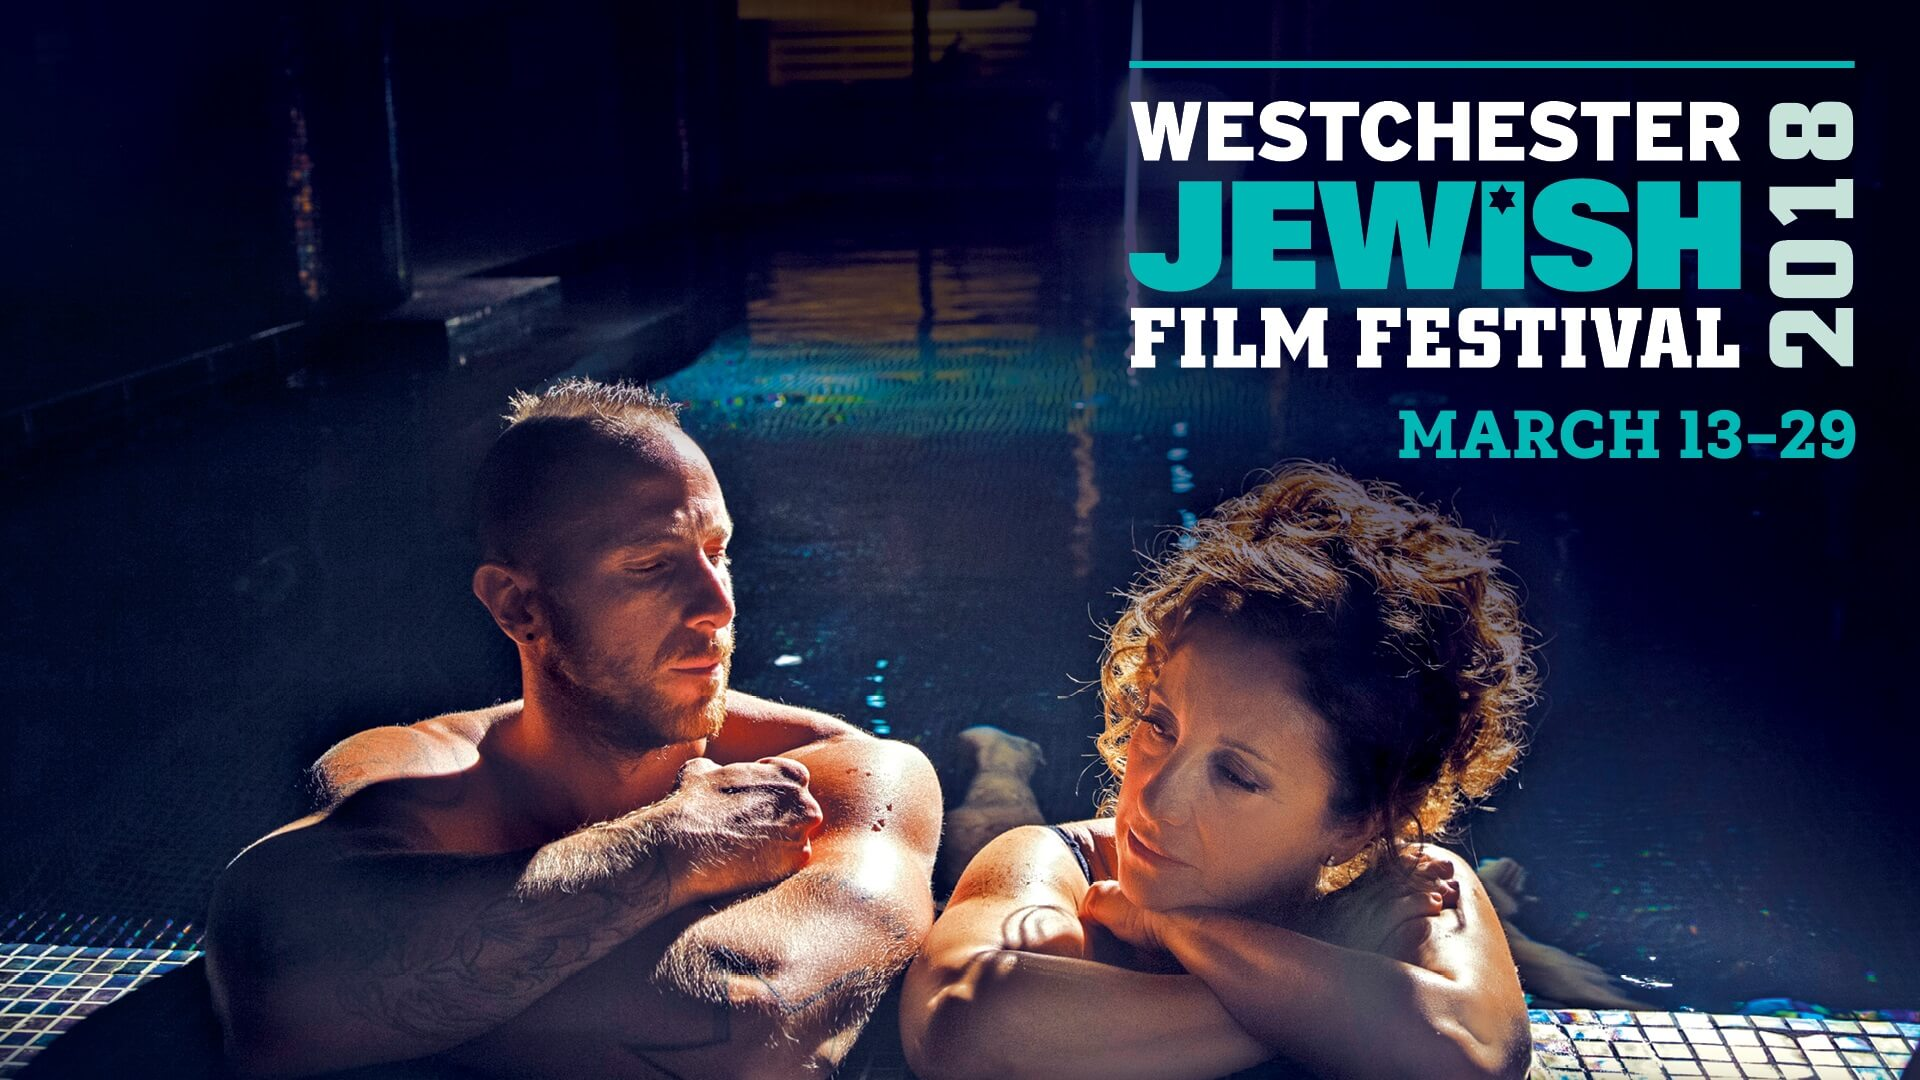 JBFC Announces Lineup of Critically-Acclaimed Films for the  Westchester Jewish Film Festival